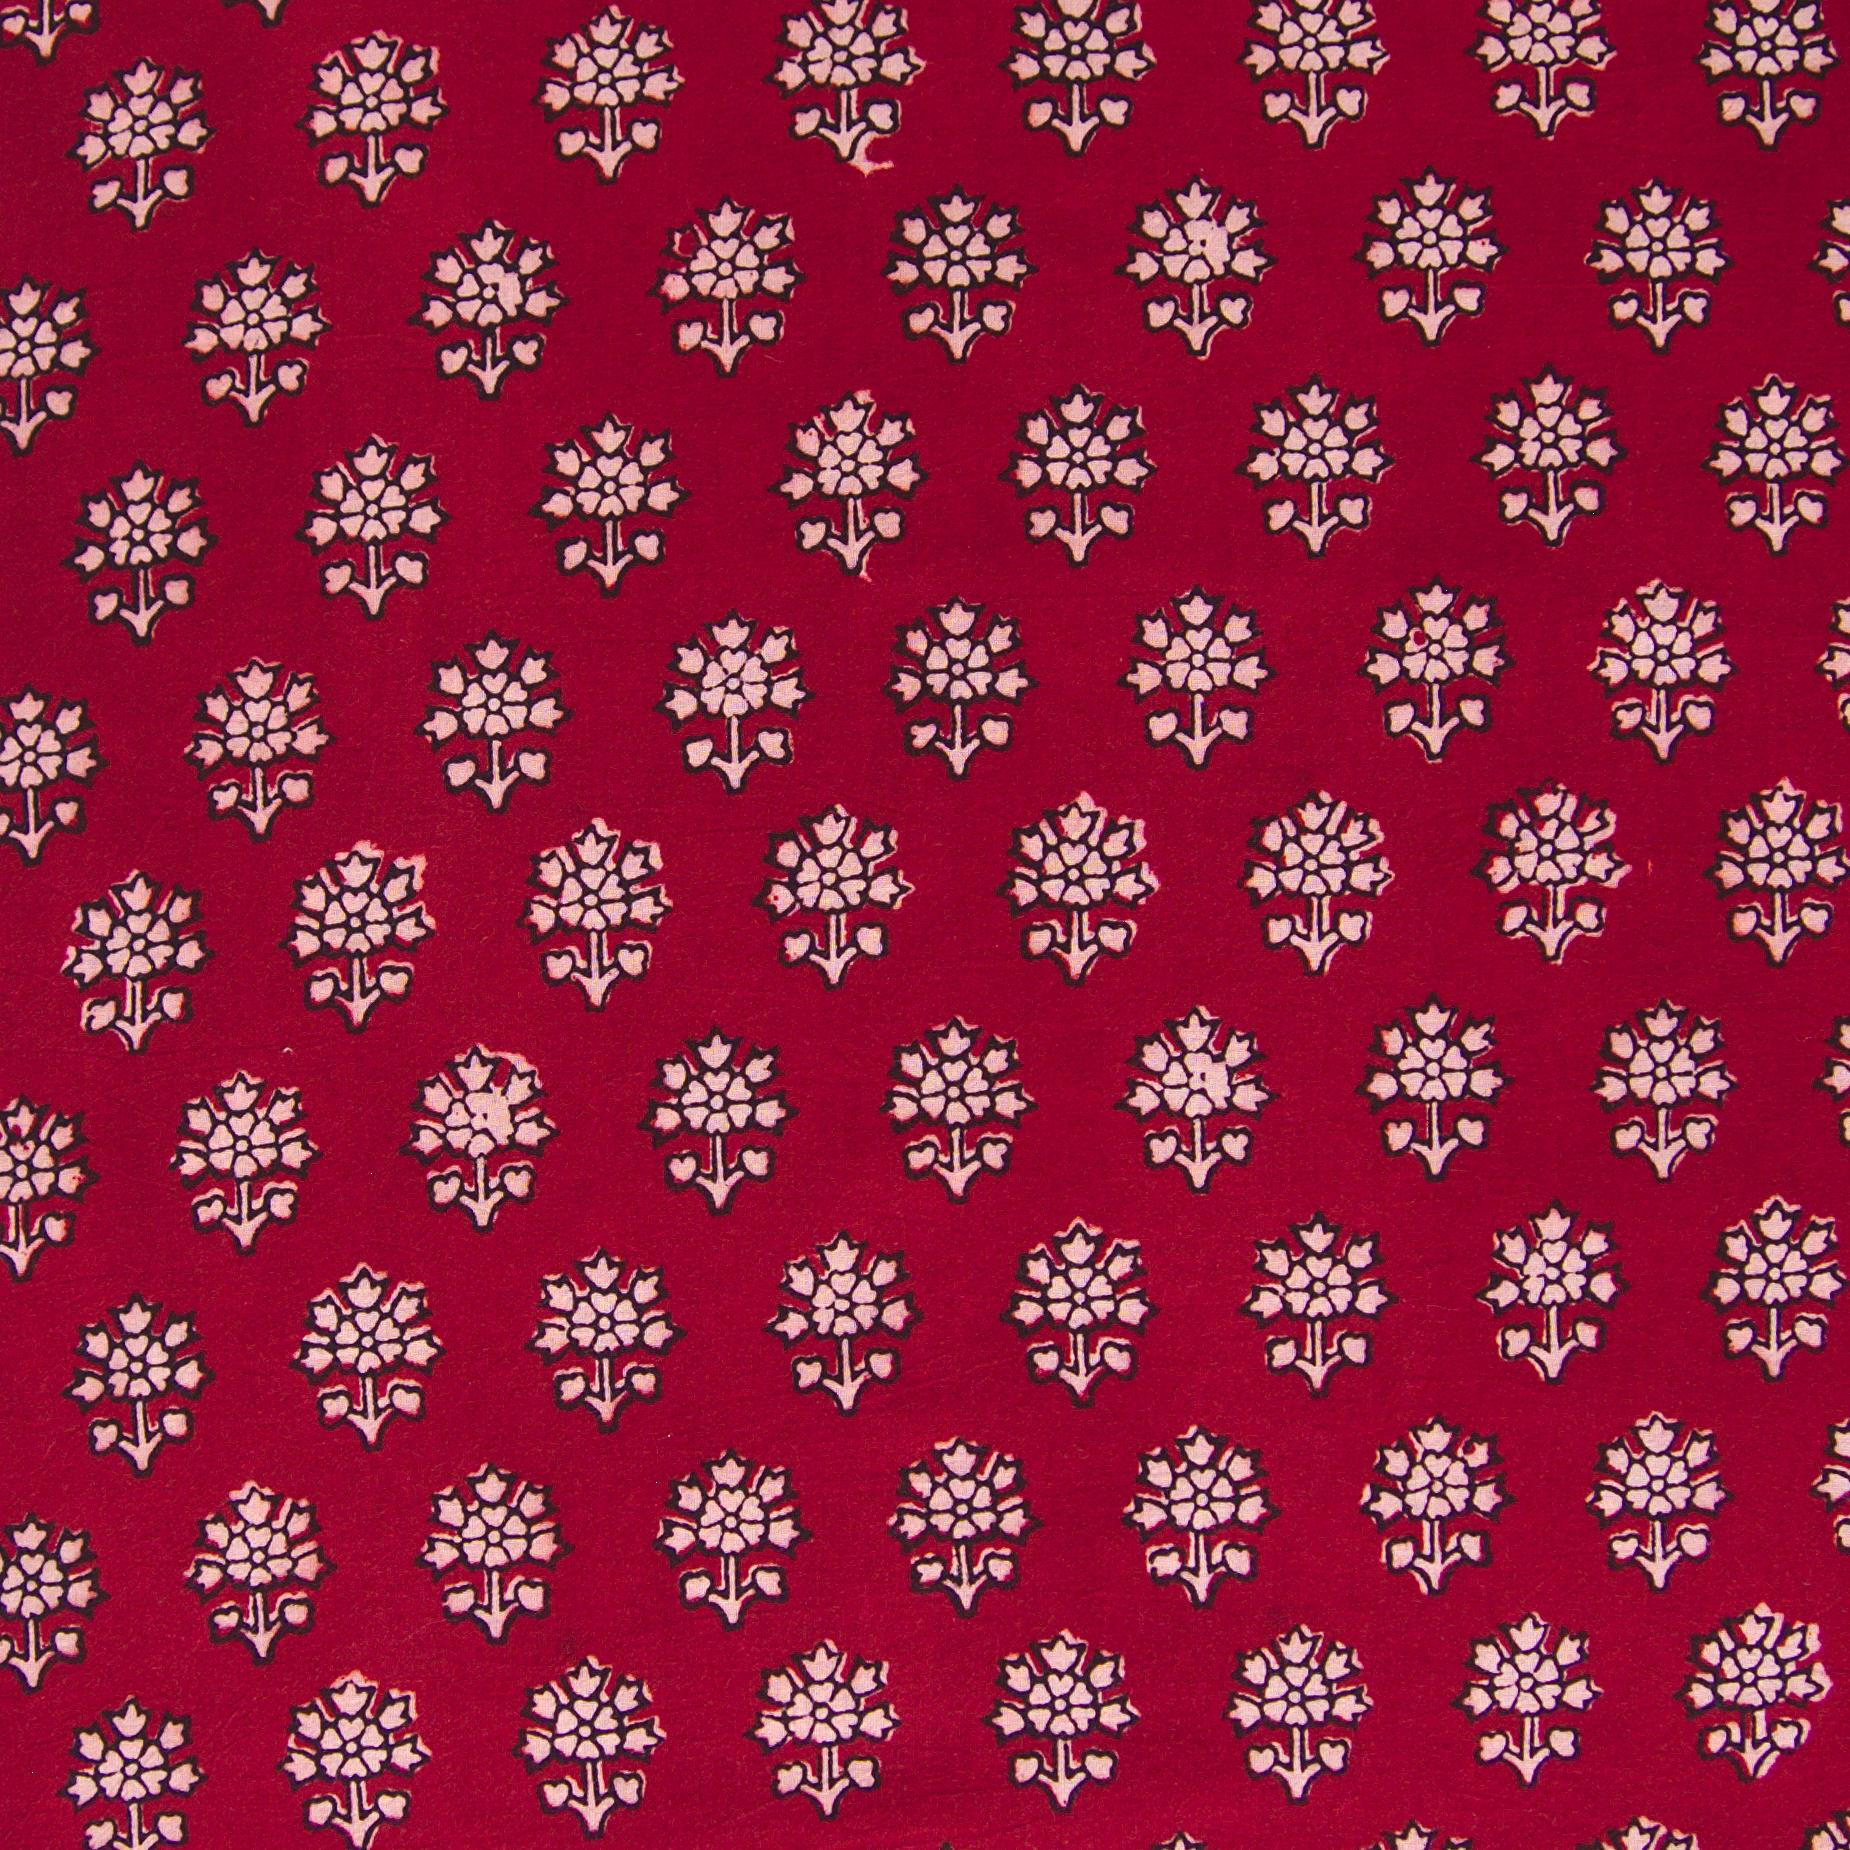 100% Block-Printed Cotton Fabric From India - New Perspective Design - Iron Rust Black & Alizarin Red Dyes - Flat - Live